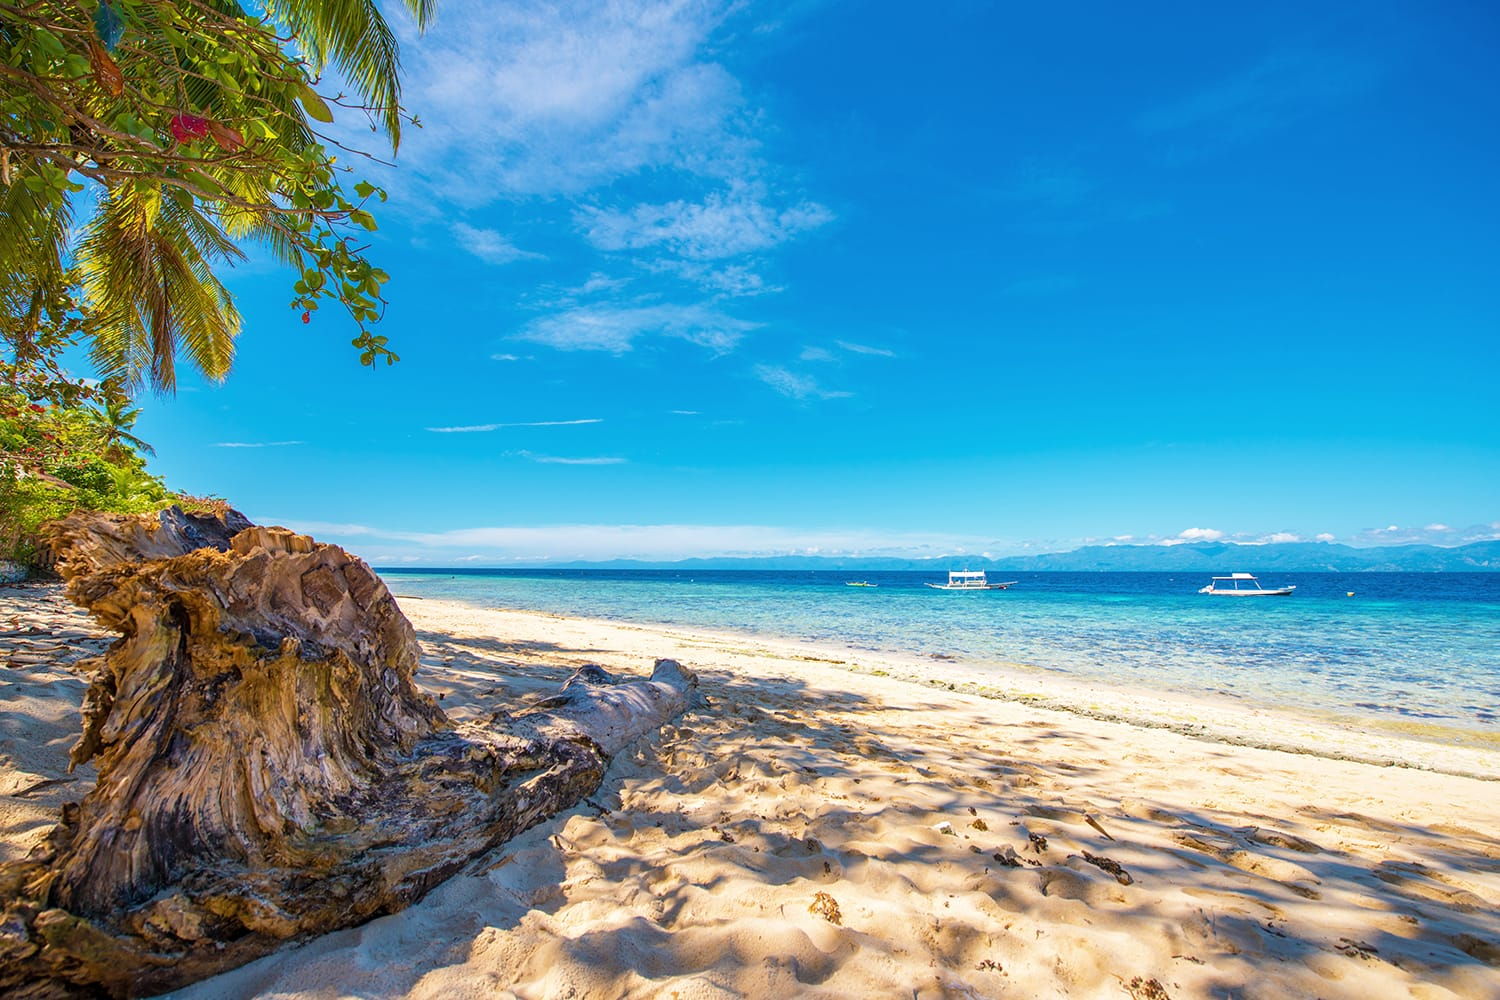 View of the sandy beach in Moalboal, Cebu, Philippines